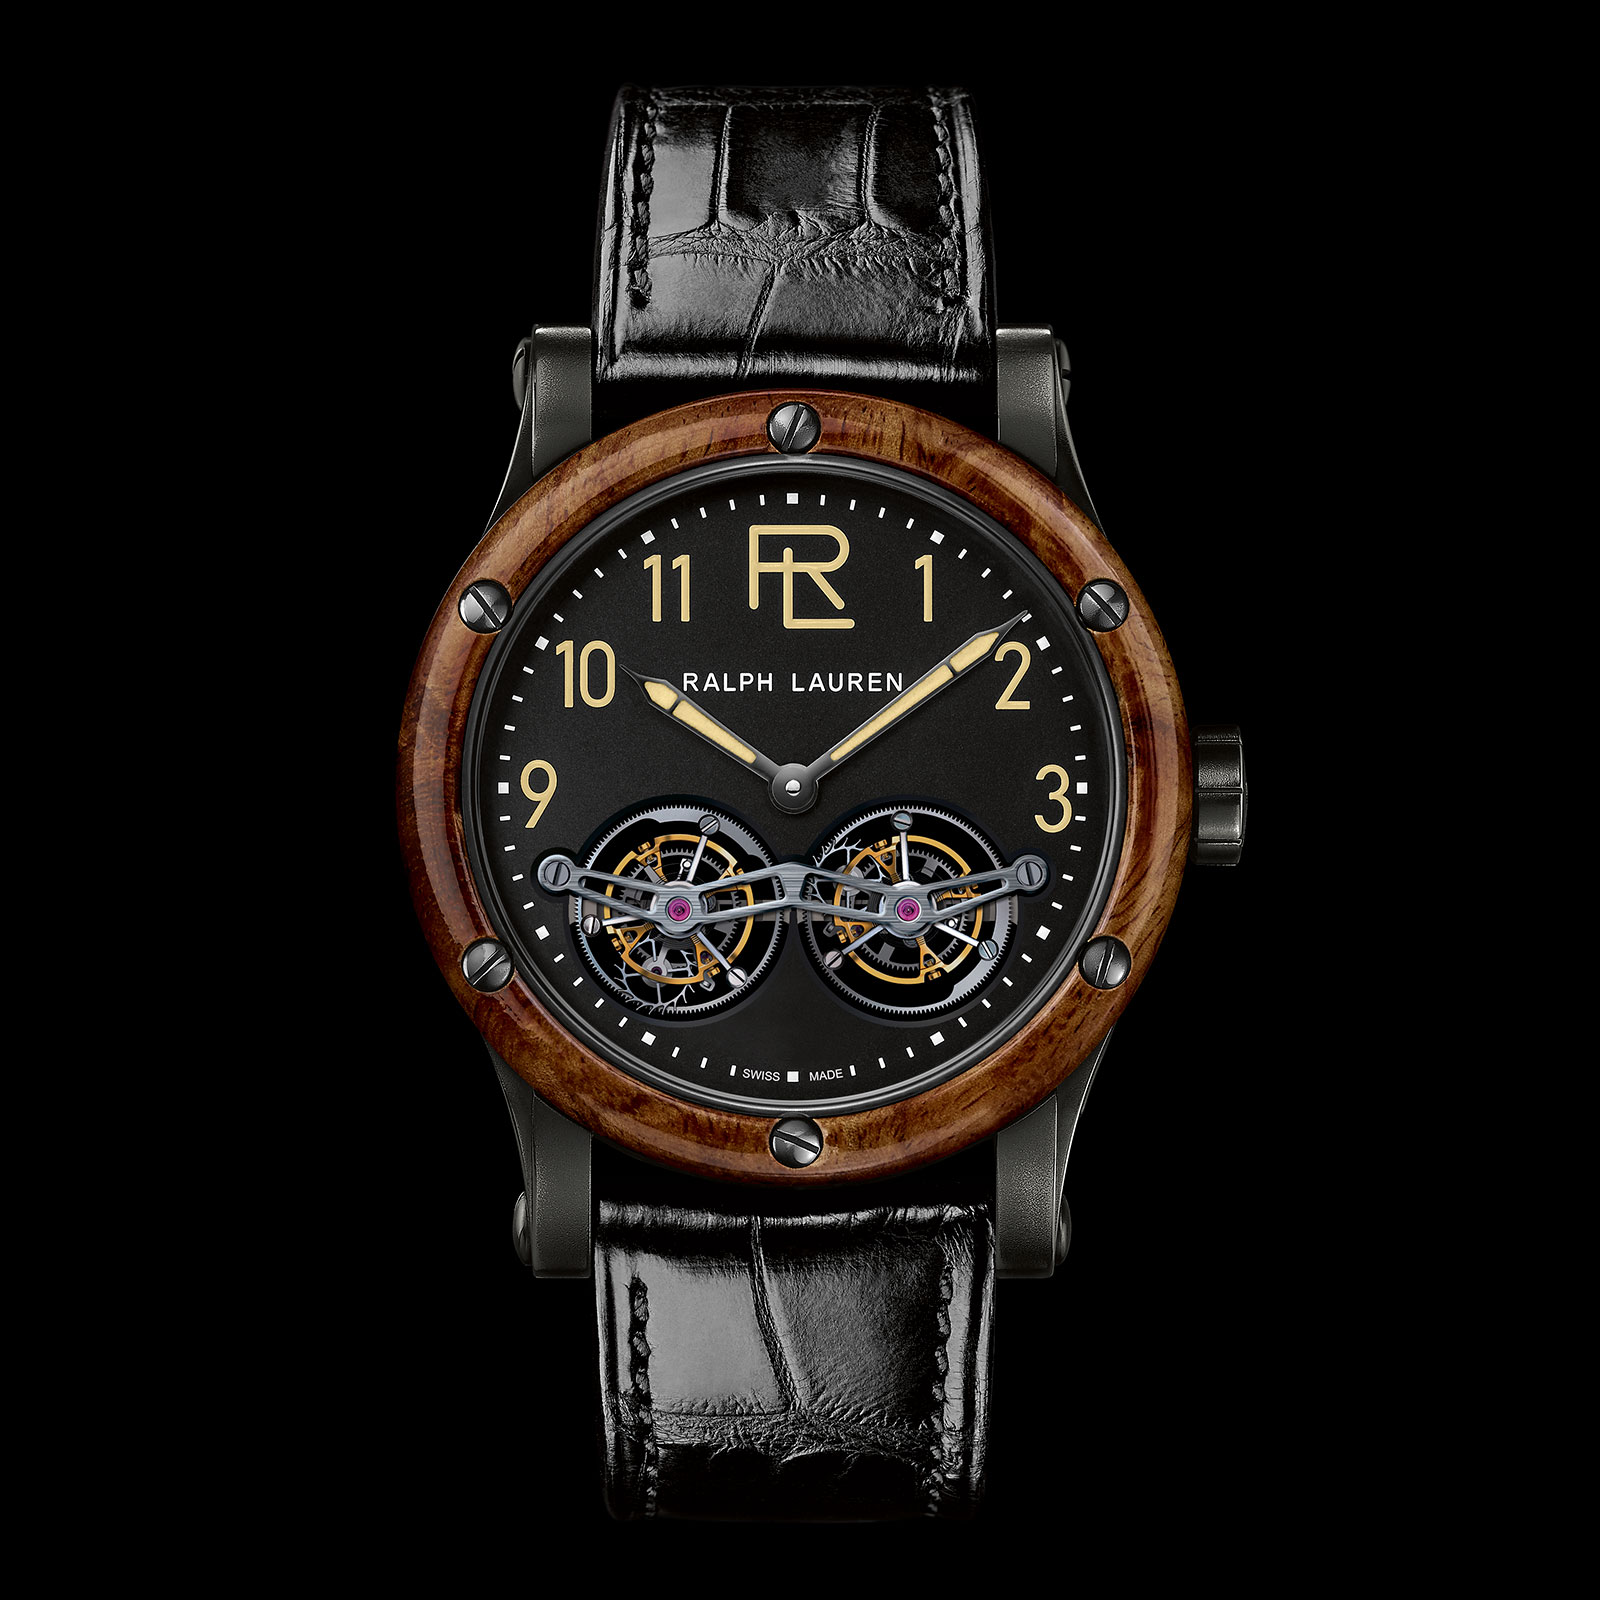 Ralph Lauren RL Automotive Double Tourbillon